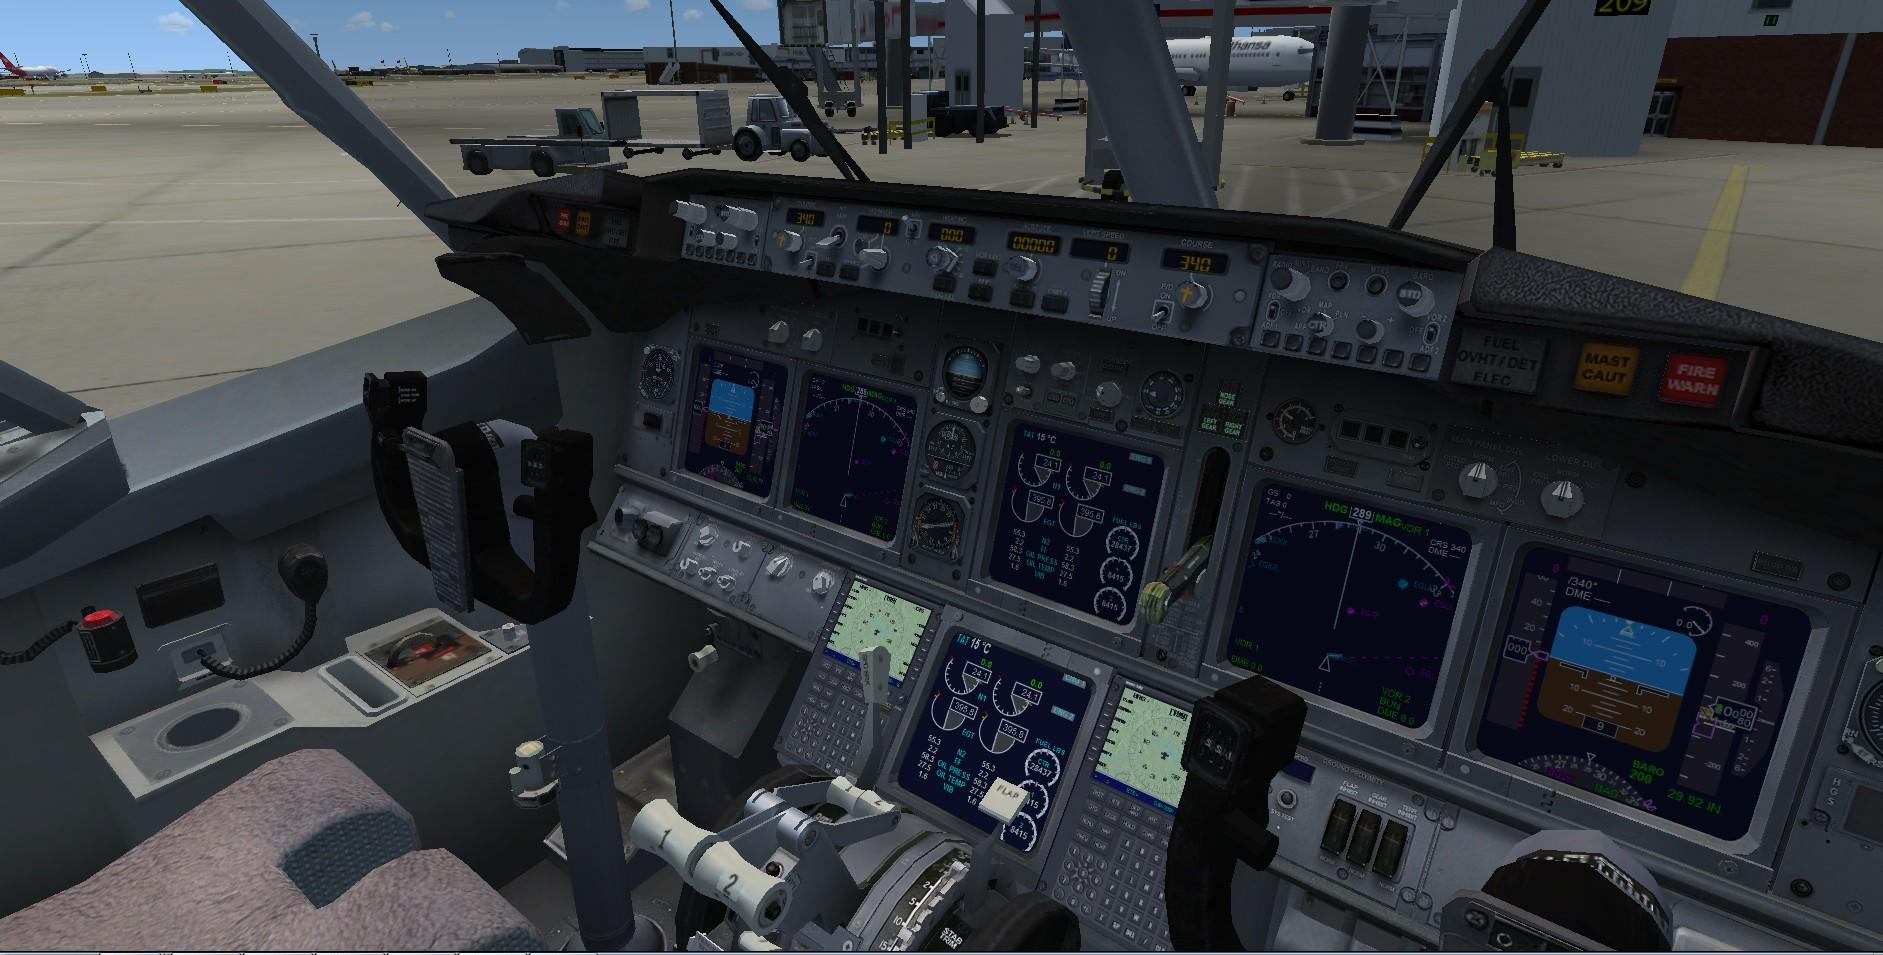 download plane simulator with 745 on Aerosoft Airbus A320a321 Livery Fsx together with X Plane Hardware In The Loop Simulation moreover Fsx Turkish Airlines Boeing 727 200 as well Microsoft Flight Simulator V5 0 1zs in addition Fsx Harare International Airport Africa Scenery.